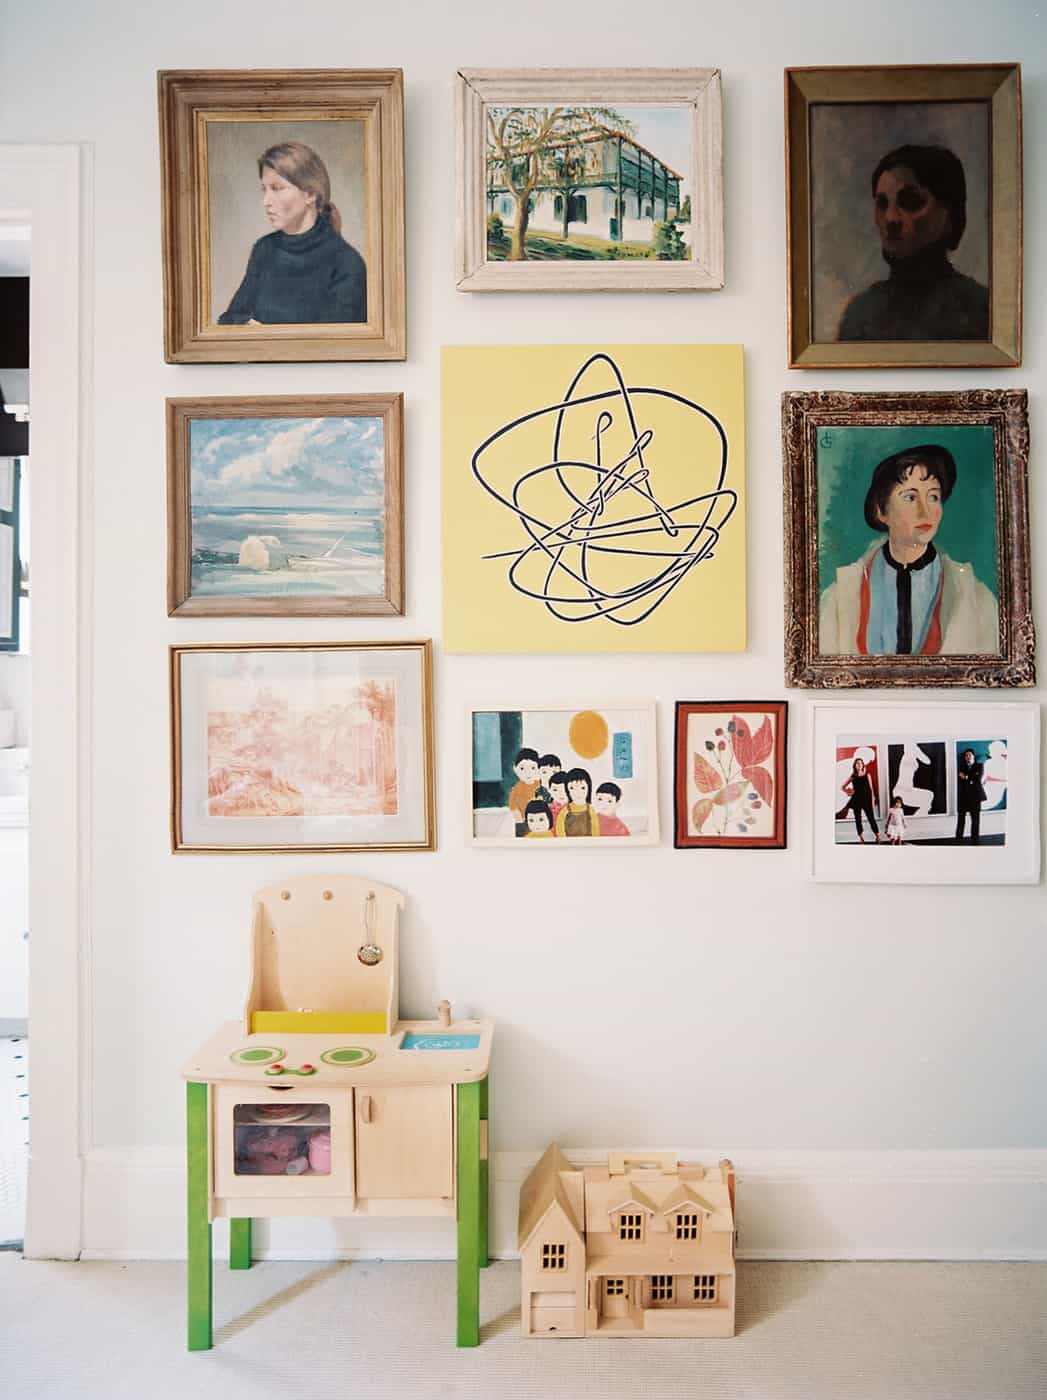 pictures on the wall Kid friendly yet trendy apartment decor